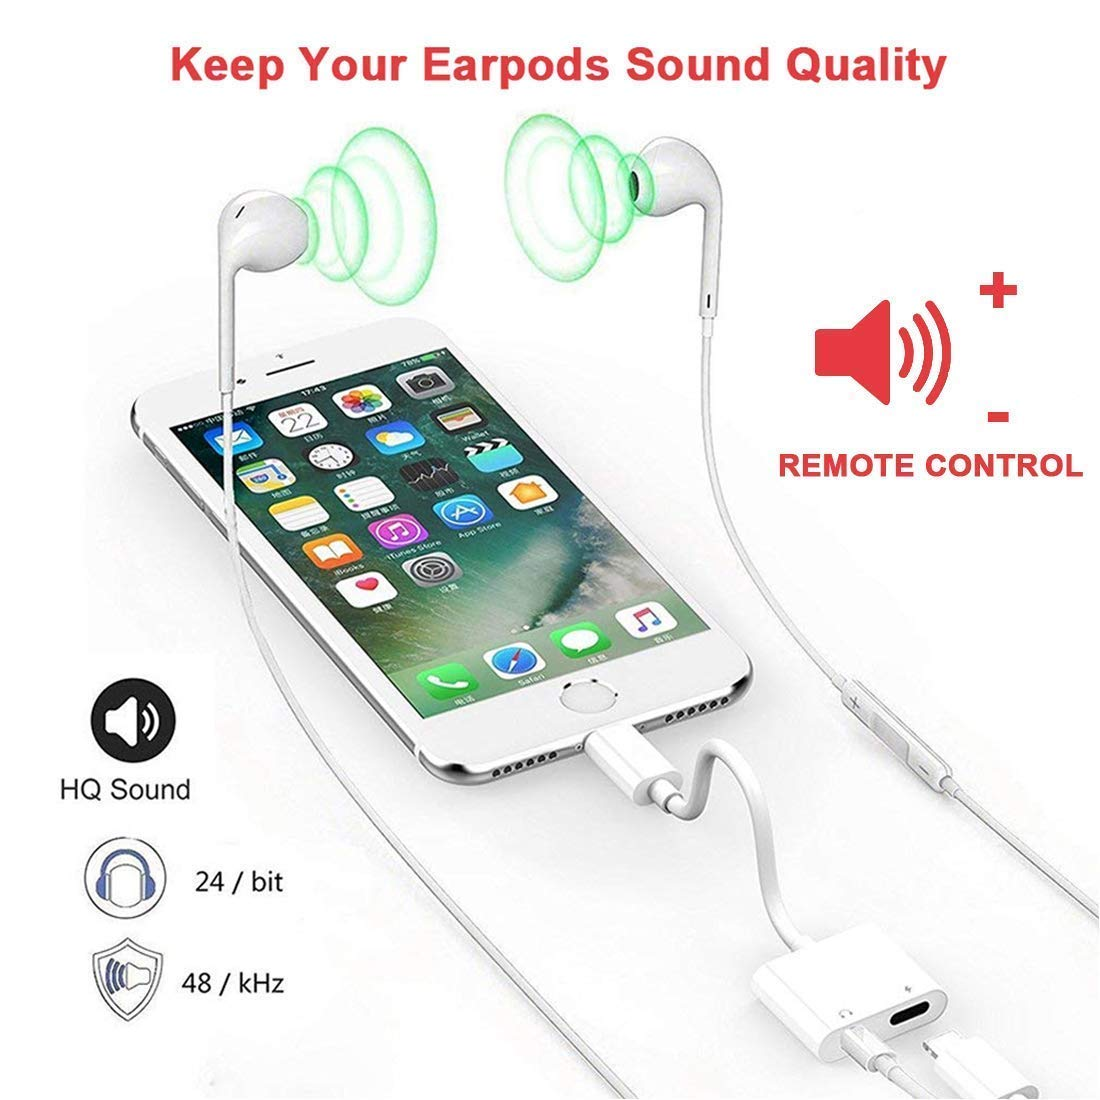 Headphone Jack for iPhone Earphone AUX Audio Splitter Adapter 3.5mm Jack Dongle Earphone Connector Compatible for iPhone 7 Plus//X//XS//XR//8//8 Plus Splitter Music and Charge Support iOS12 Accessory More